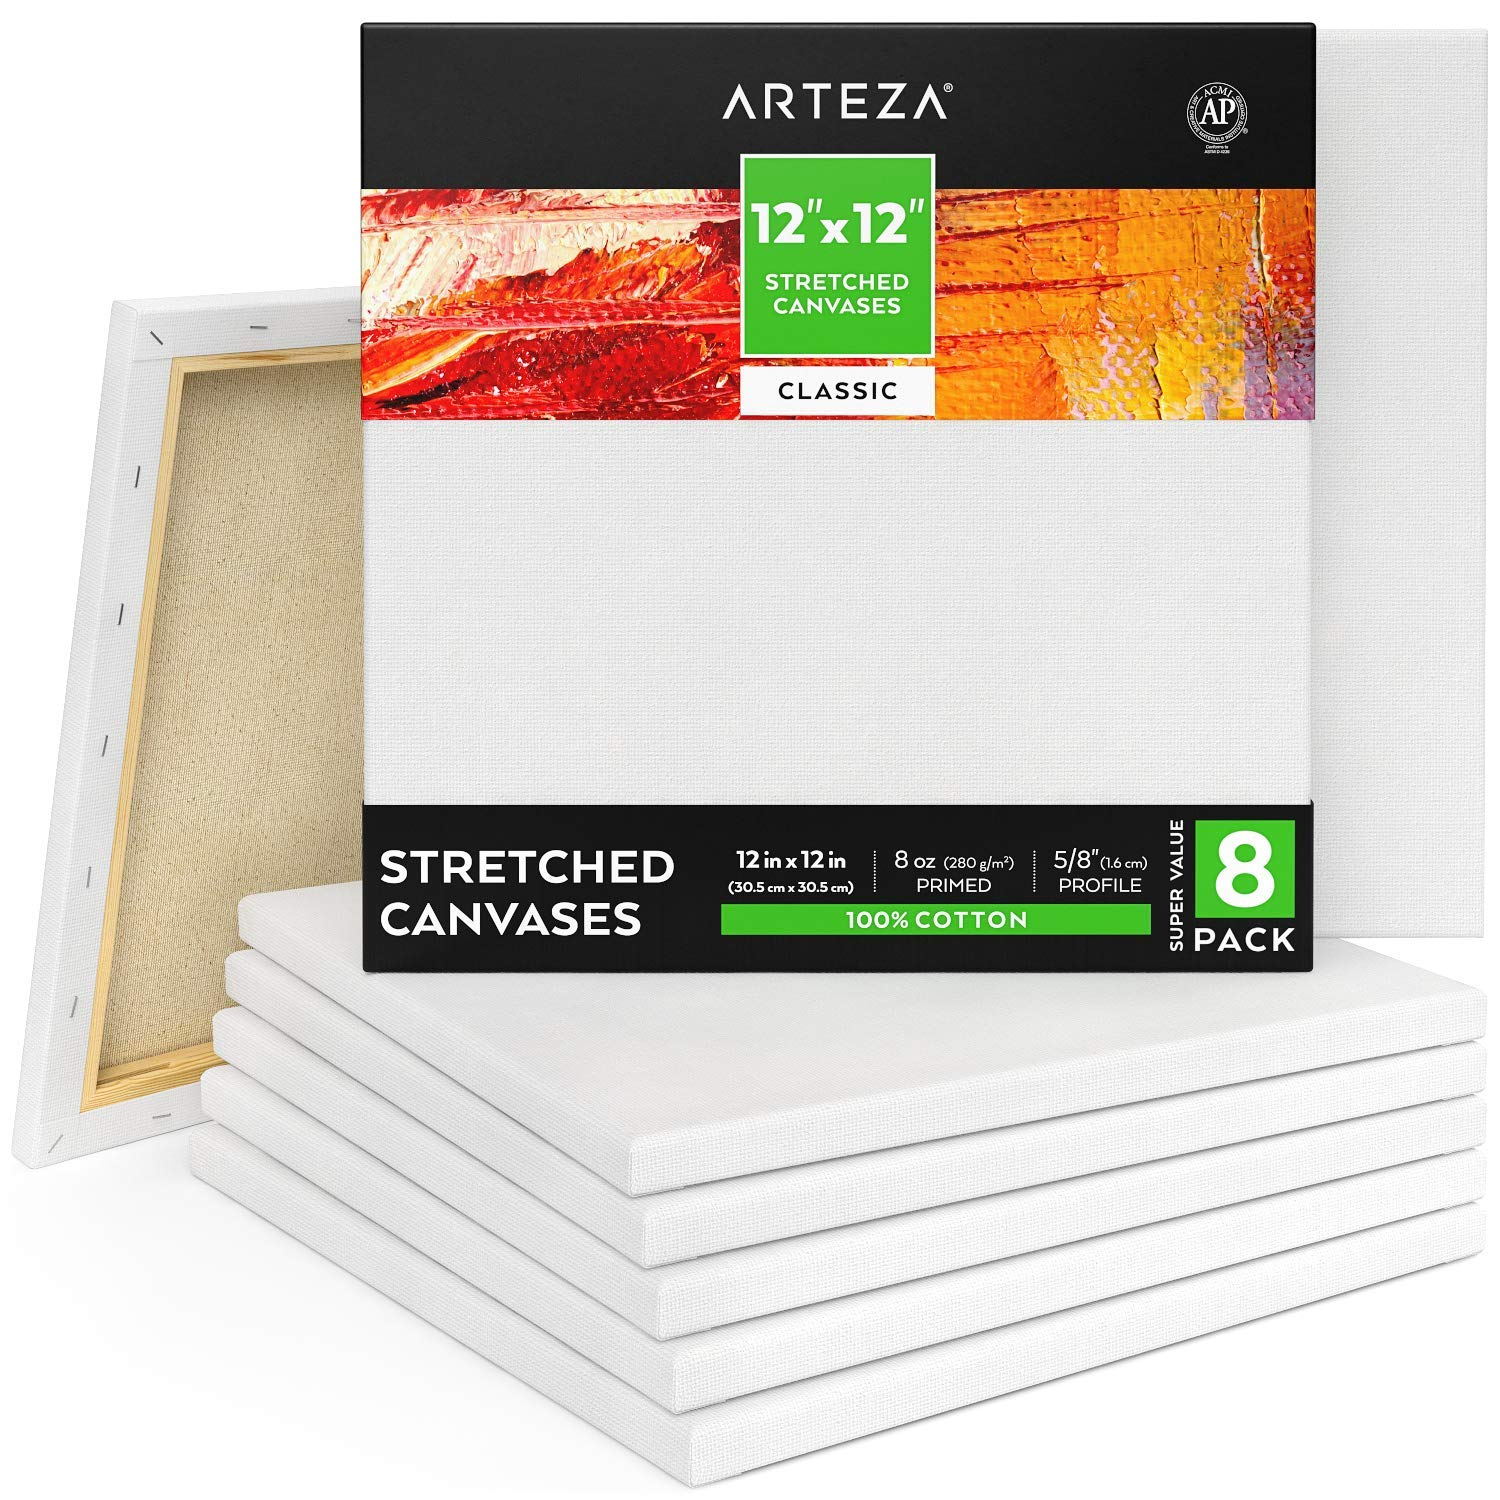 With a Big Pack of 12 inch Square Canvases in 100% Cotton you won't have to stop painting!